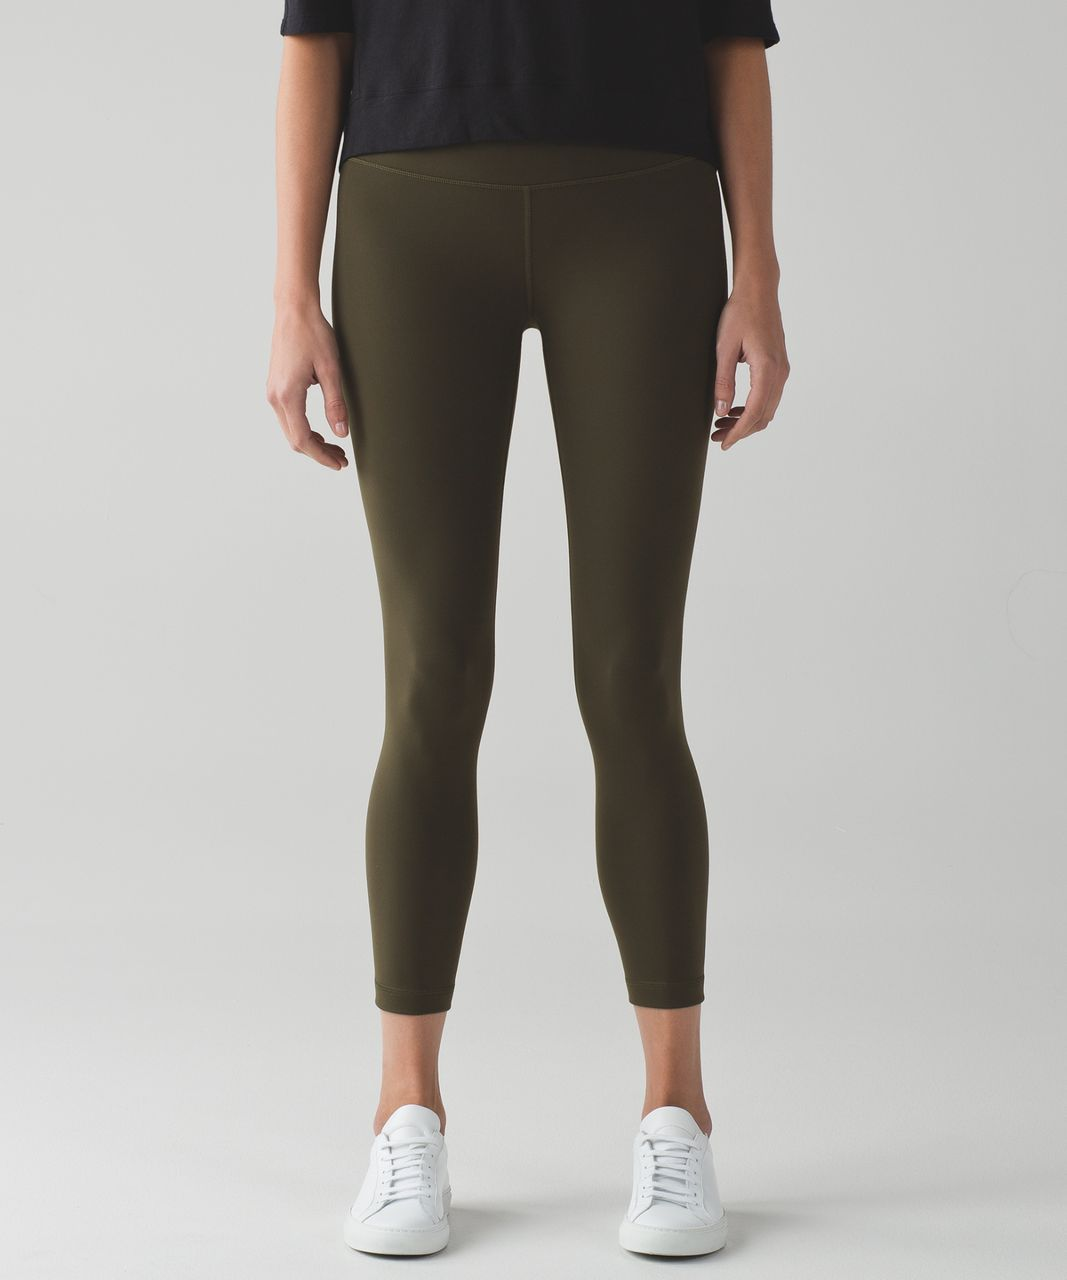 Lululemon High Times Pant (Full-On Luon) - Military Green